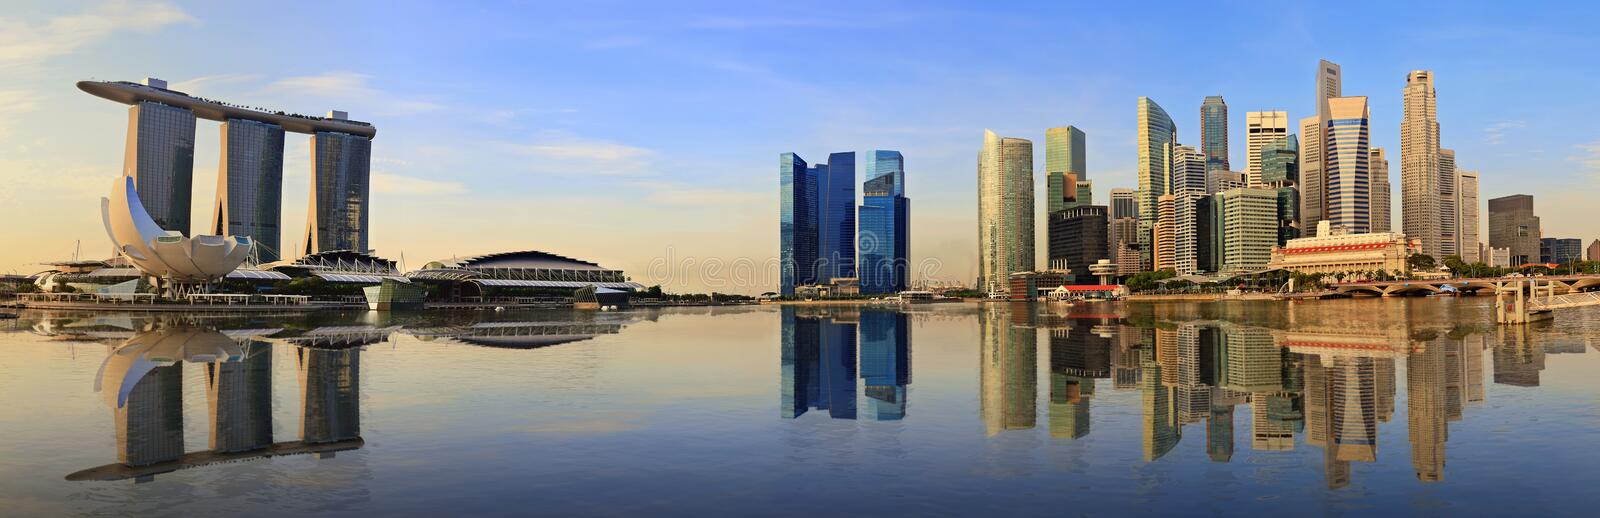 Download Singapore panorama skyline stock photo. Image of landmark - 36175762